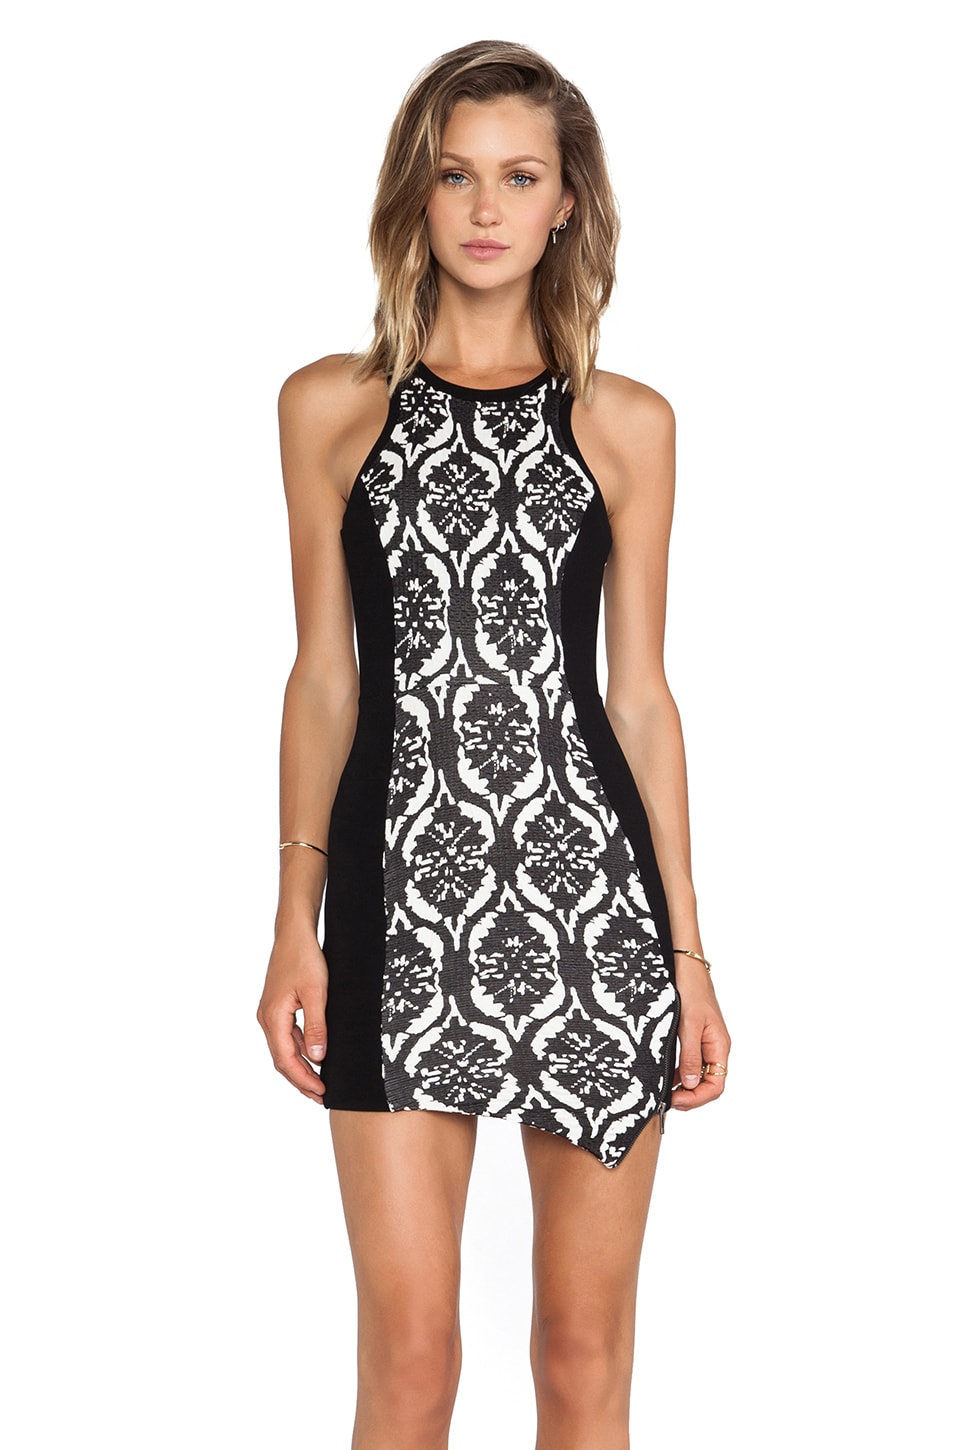 Lovers + Friends Simmer Body Con Dress in Black & White